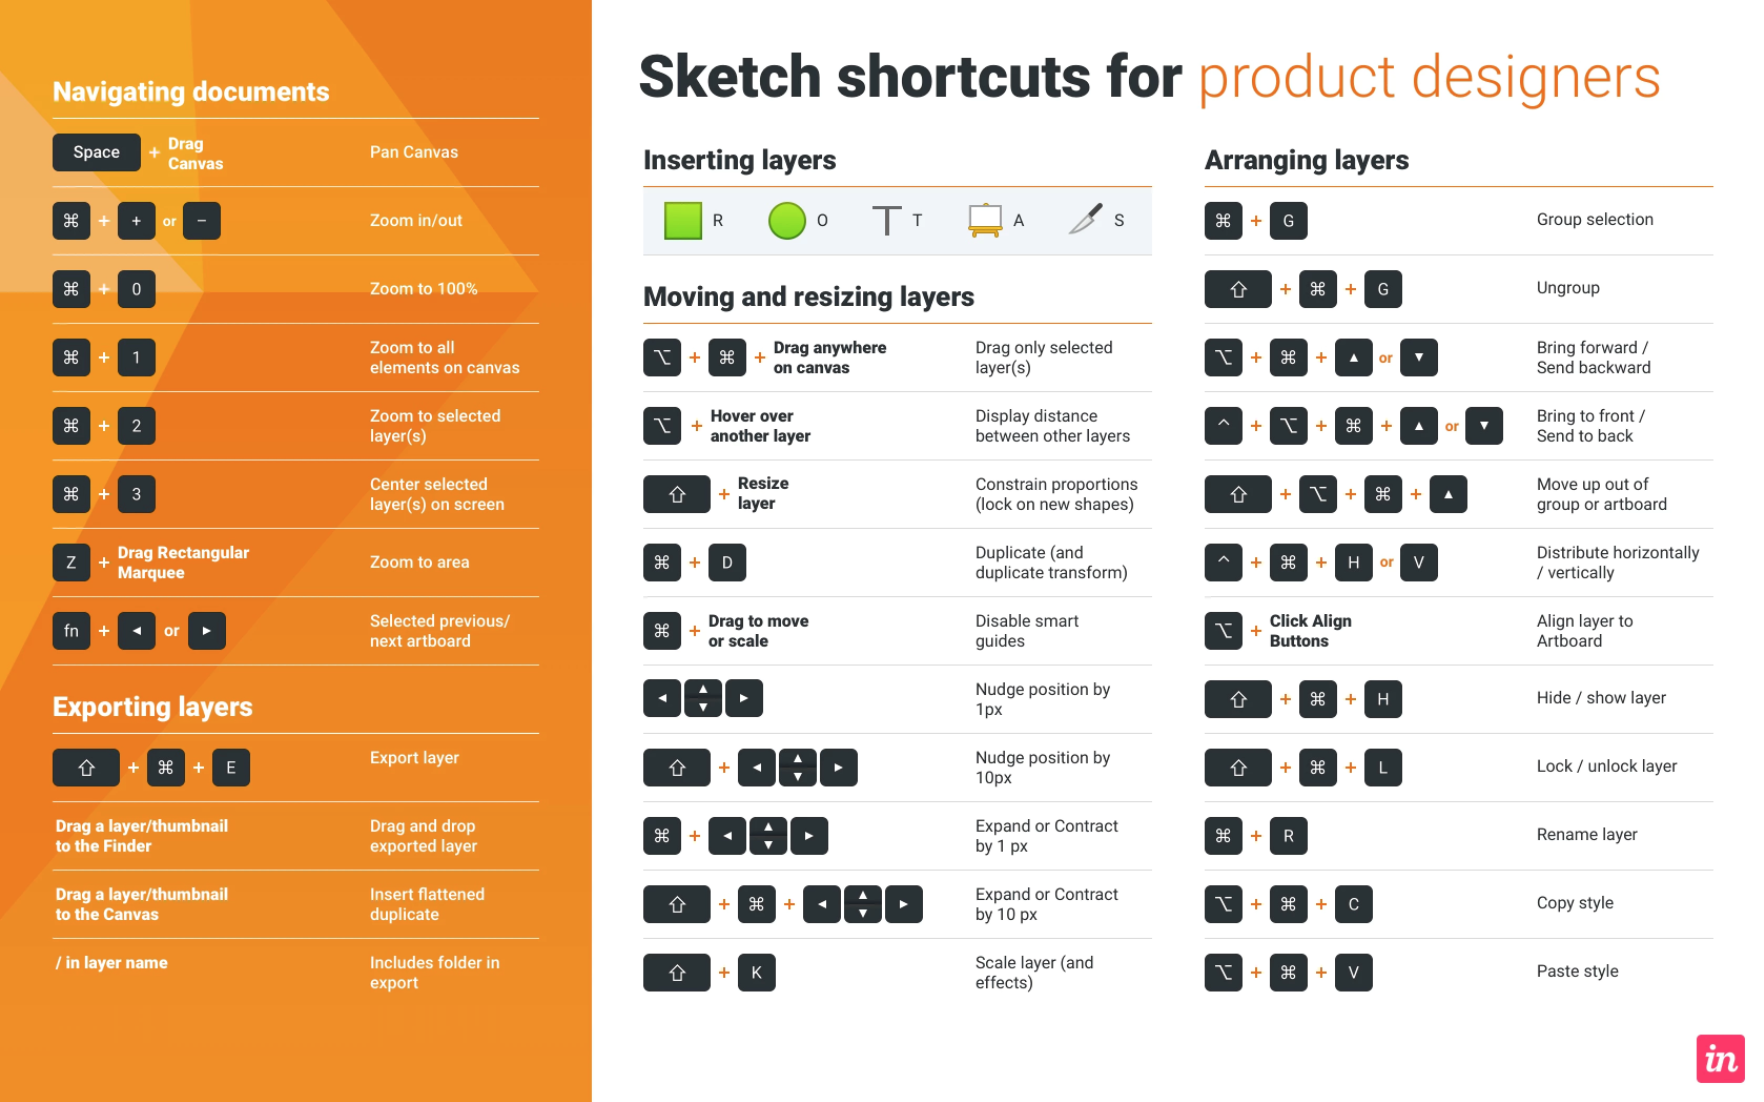 Sketch shortcuts